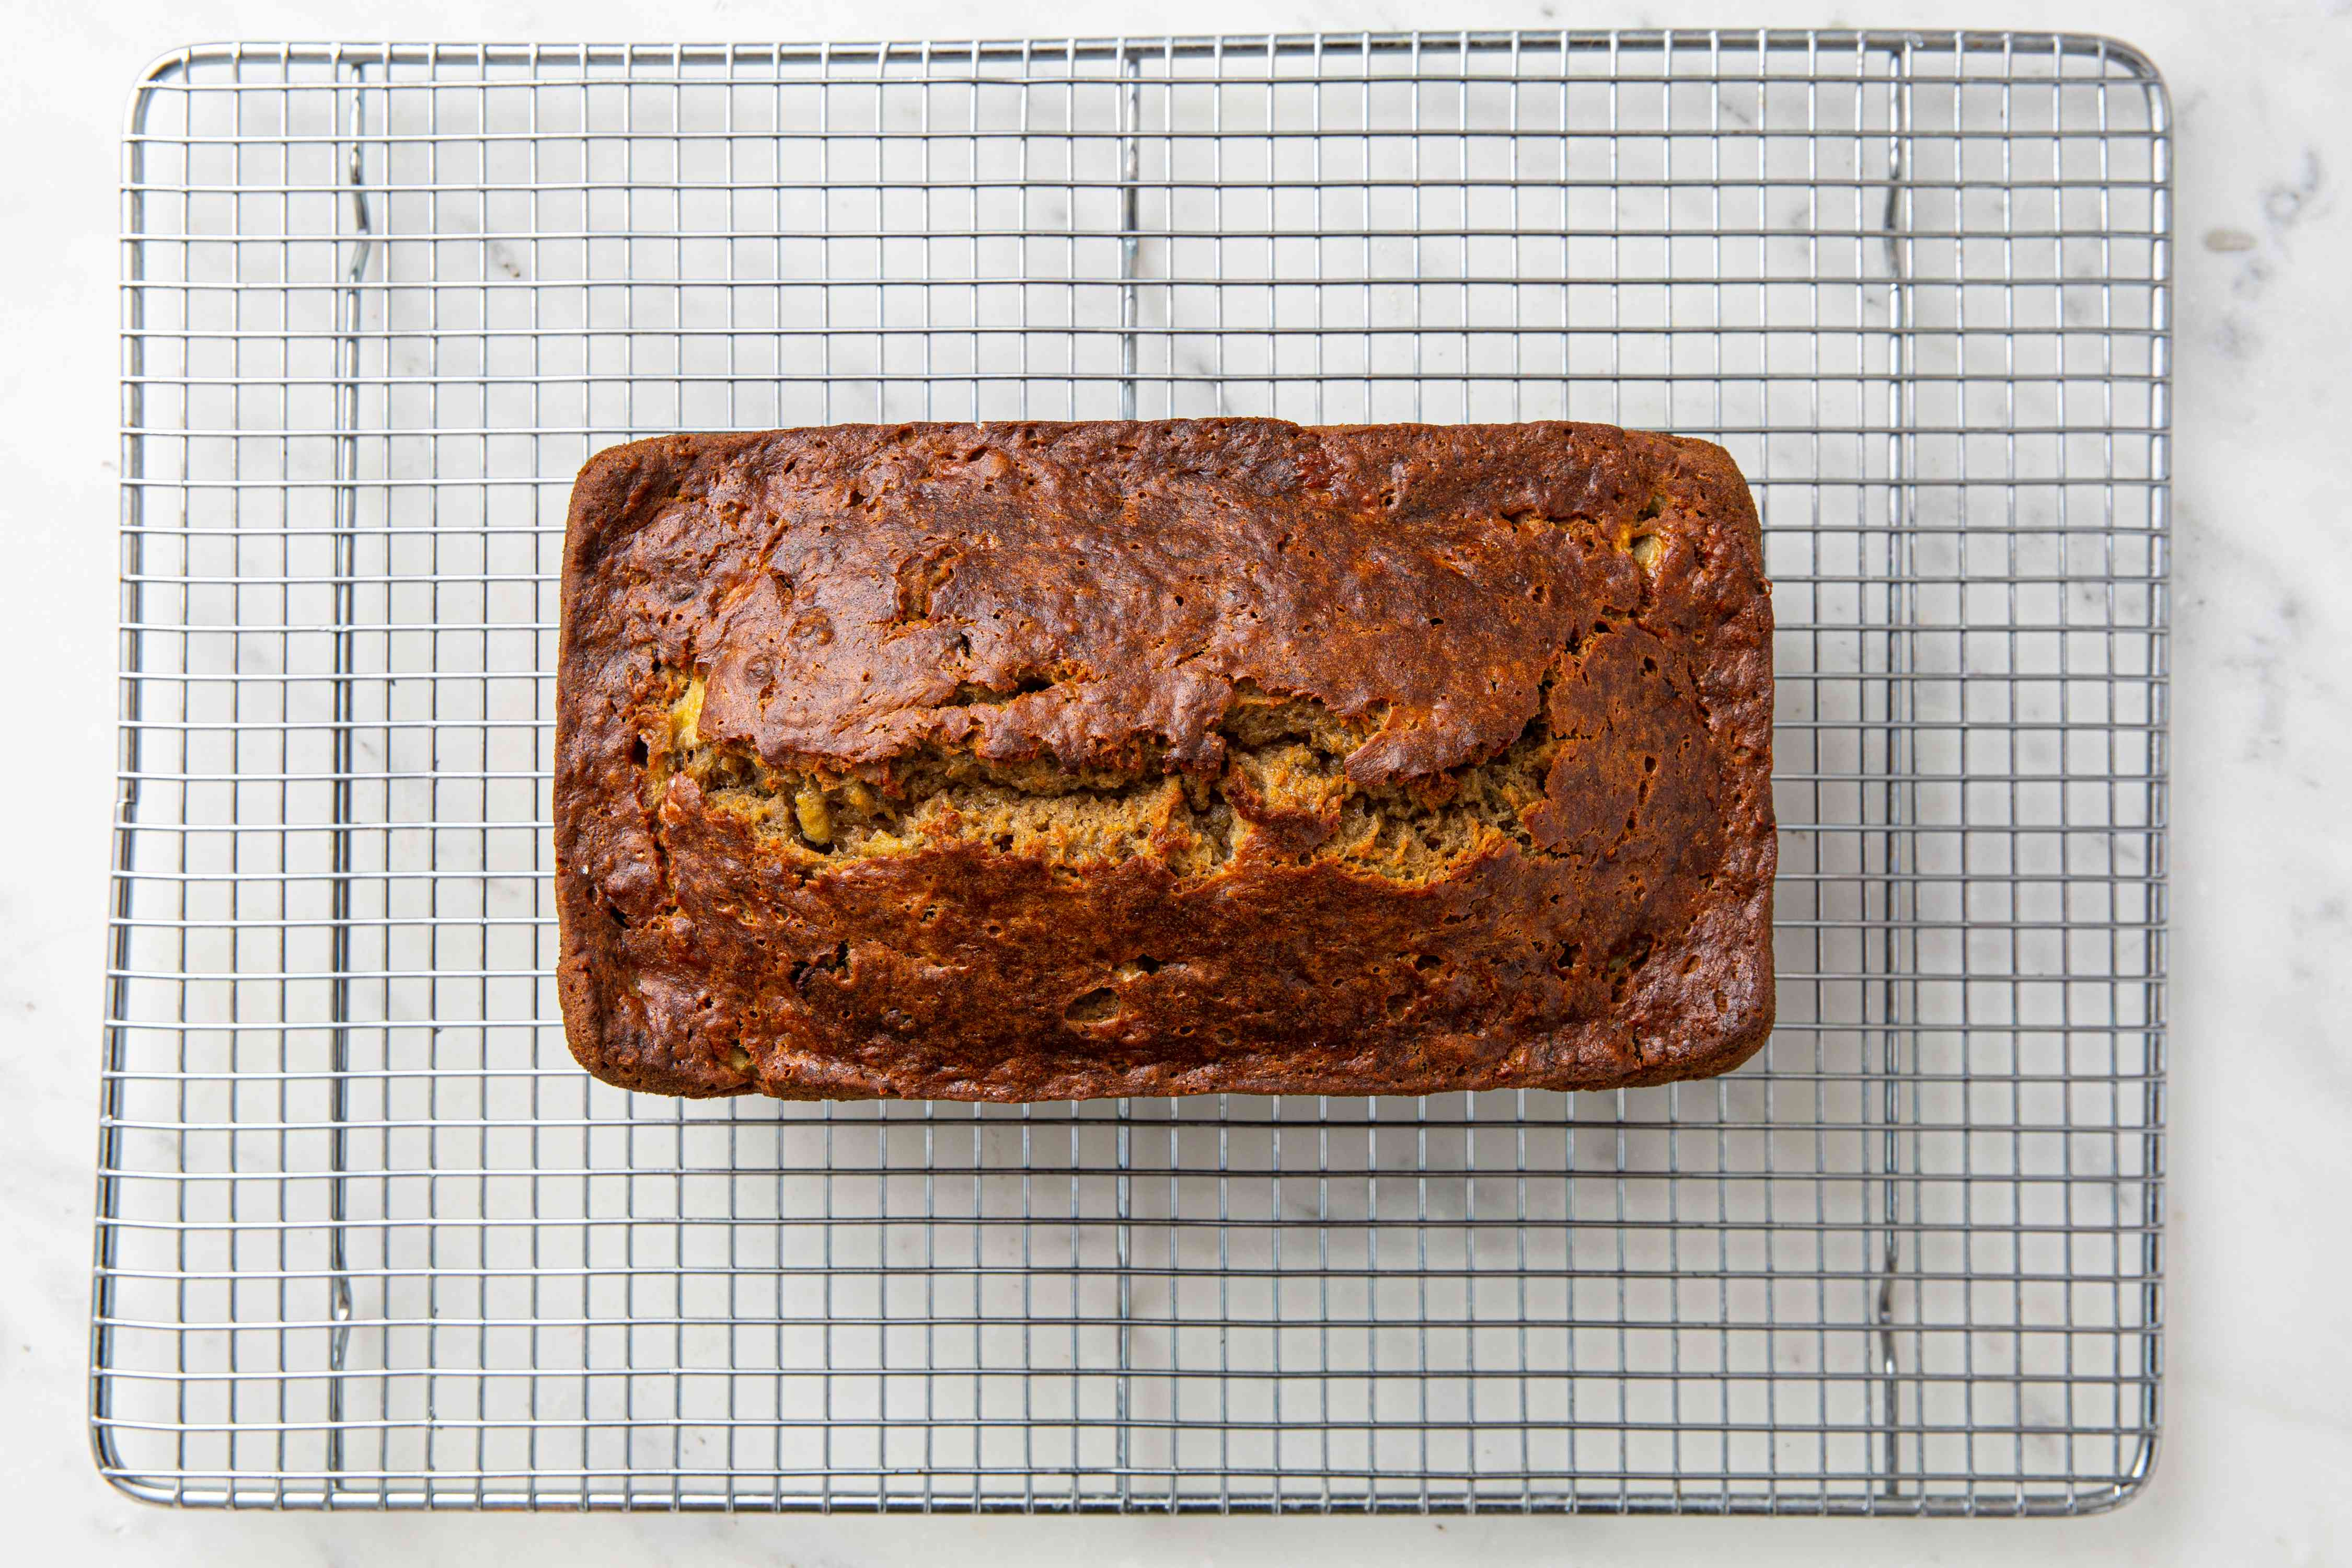 Moist banana bread with coconut oil on a wire cooling rack